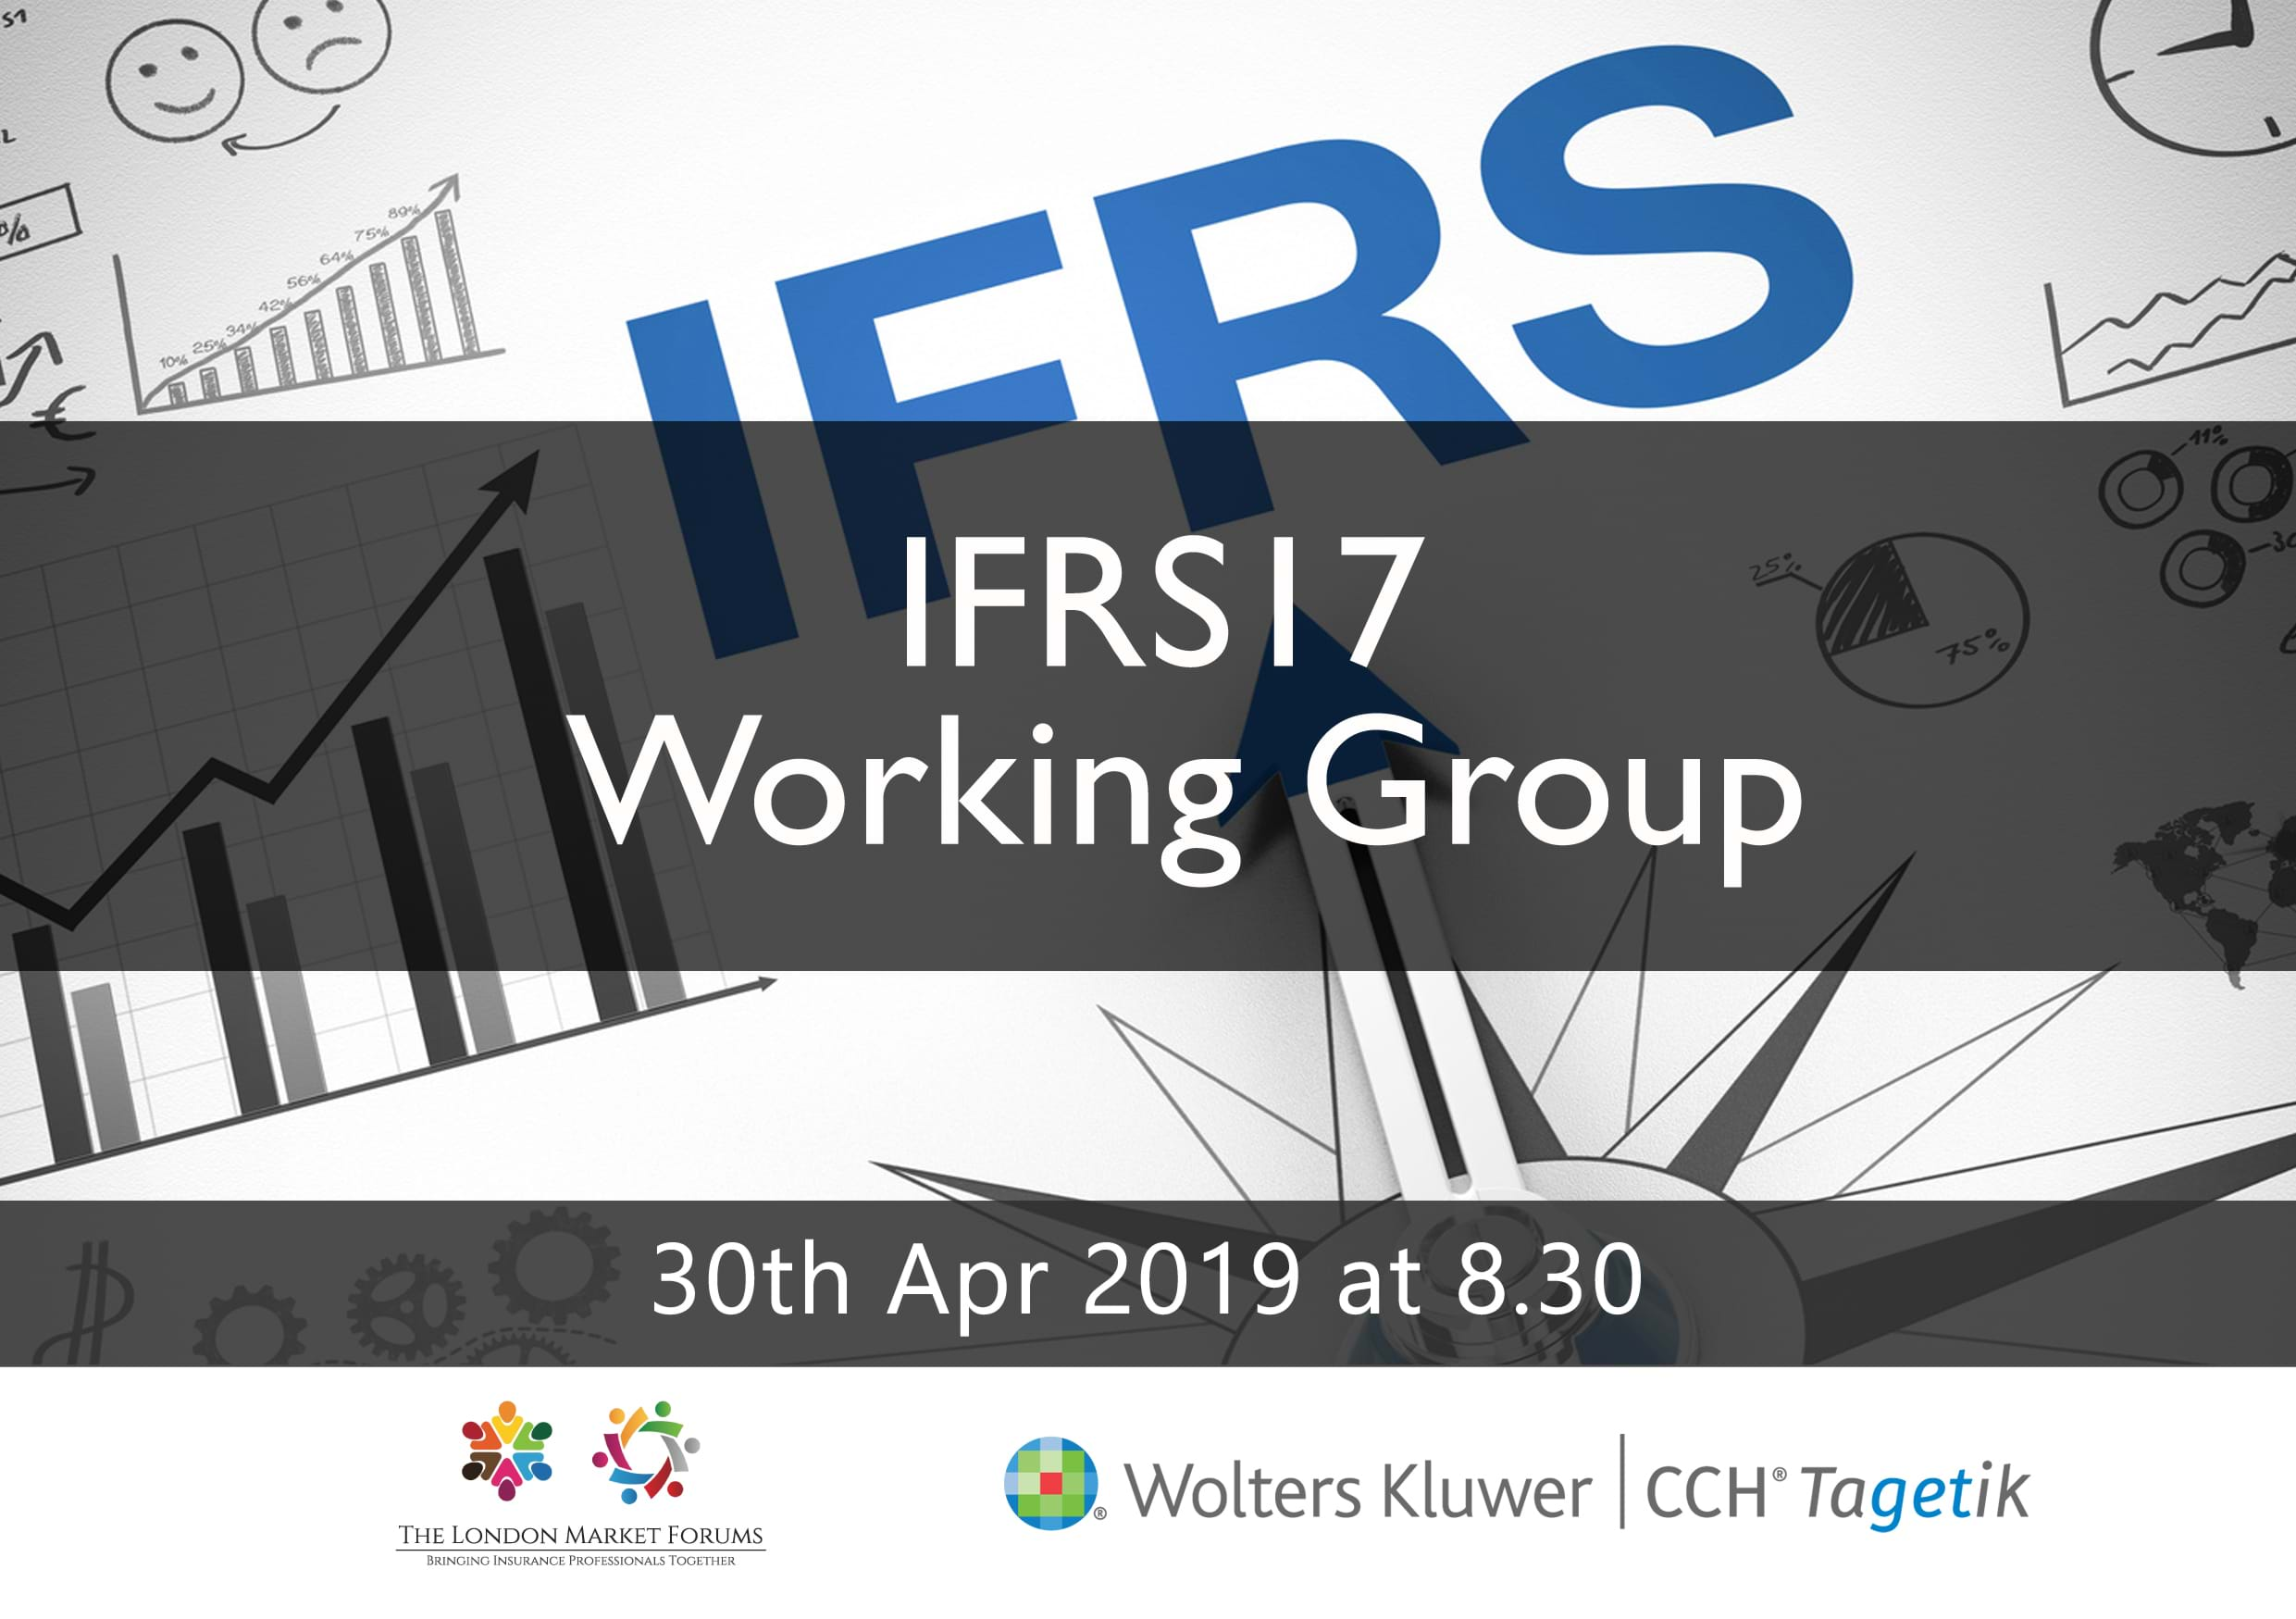 IFRS Working Group - 30th April 2019